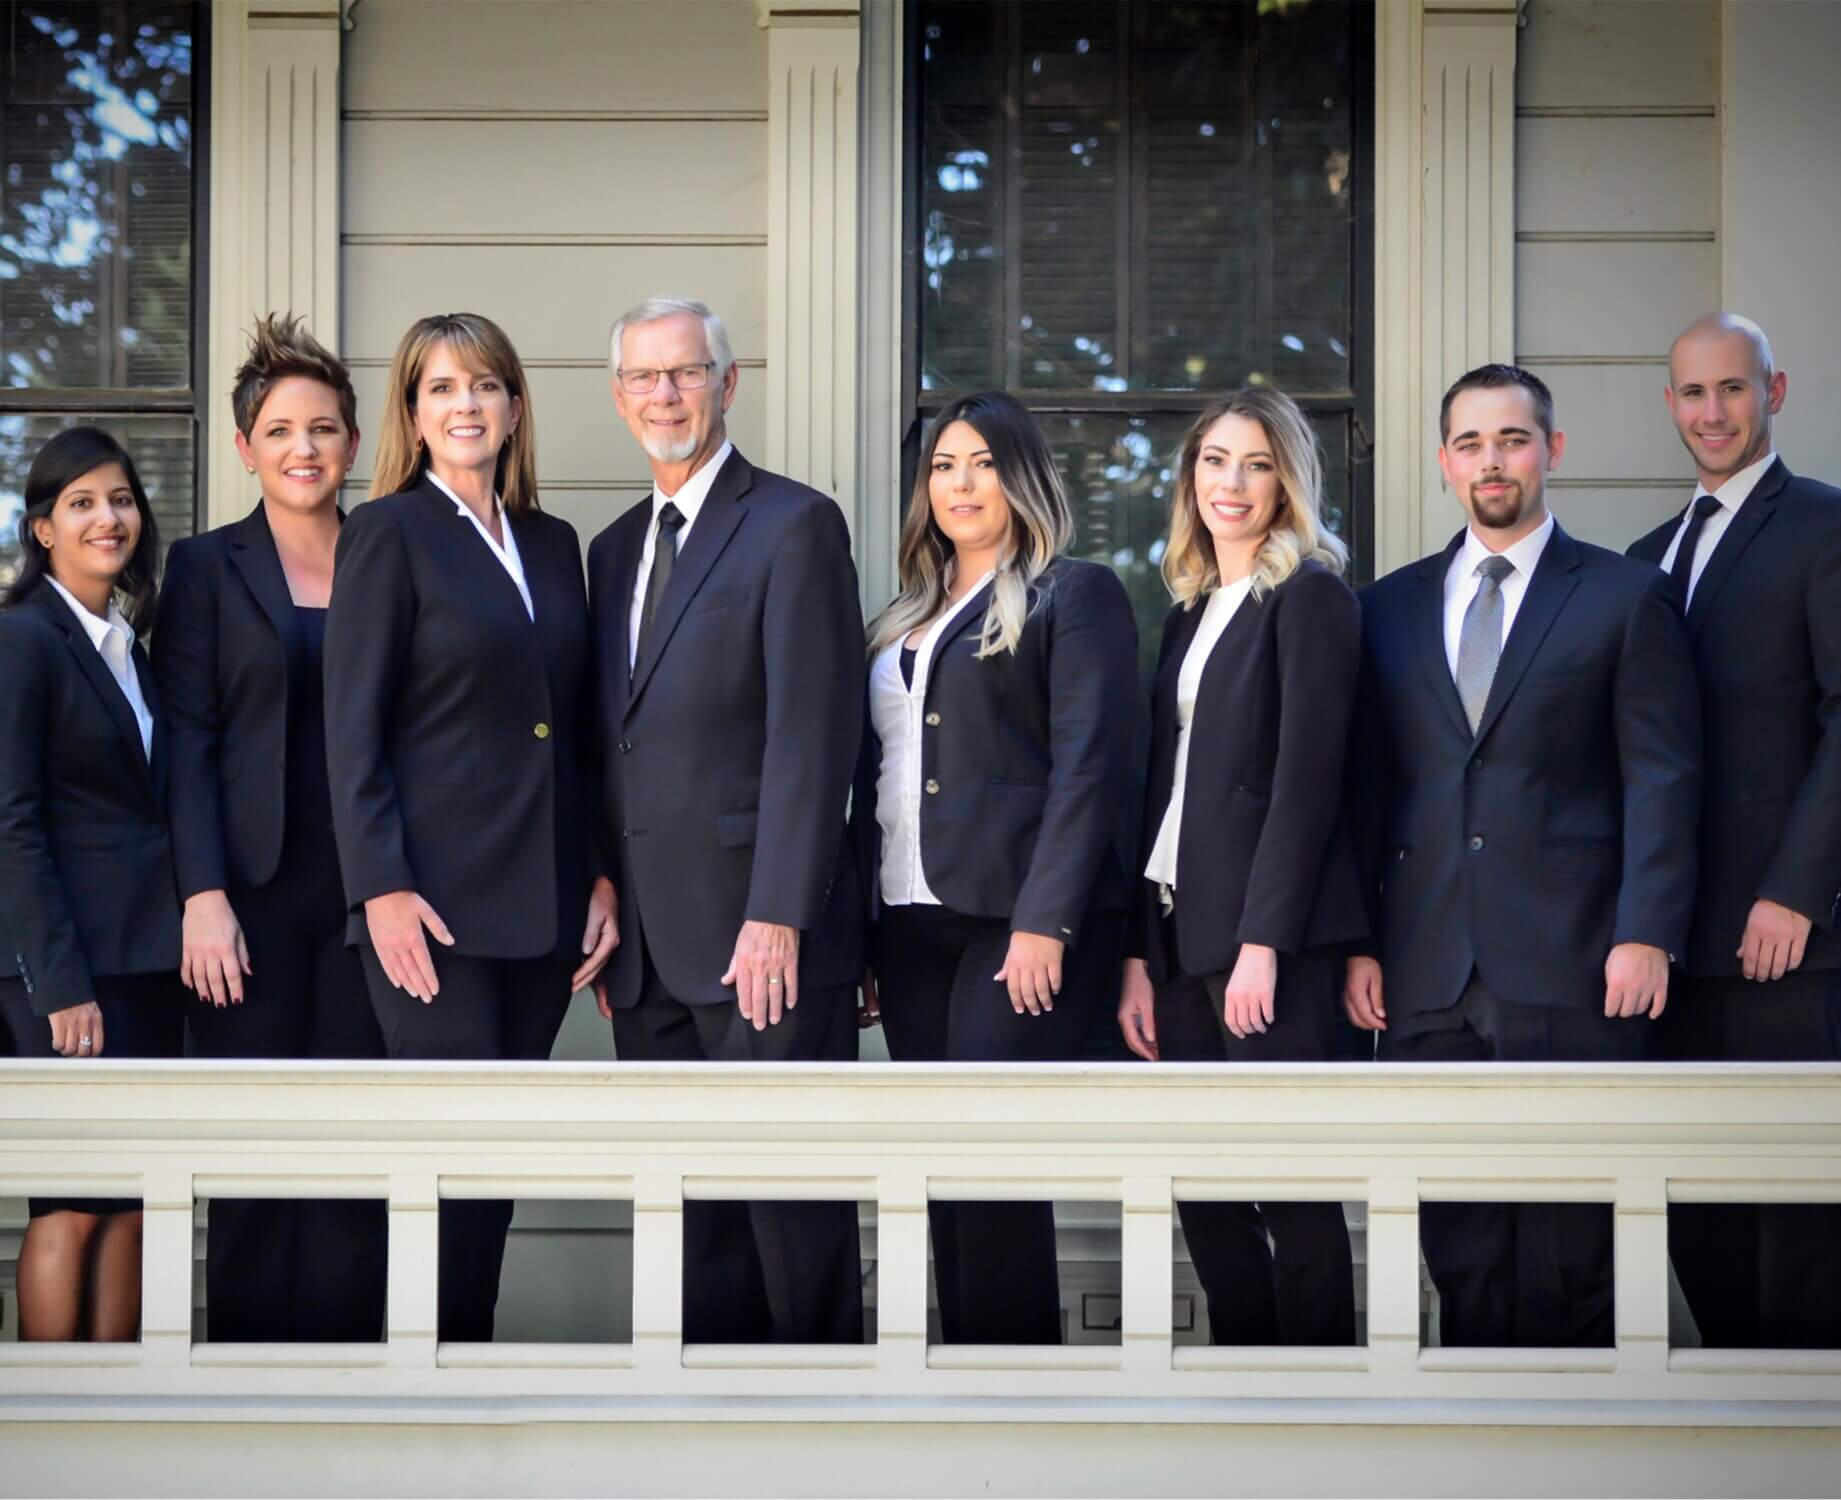 funeral staff image